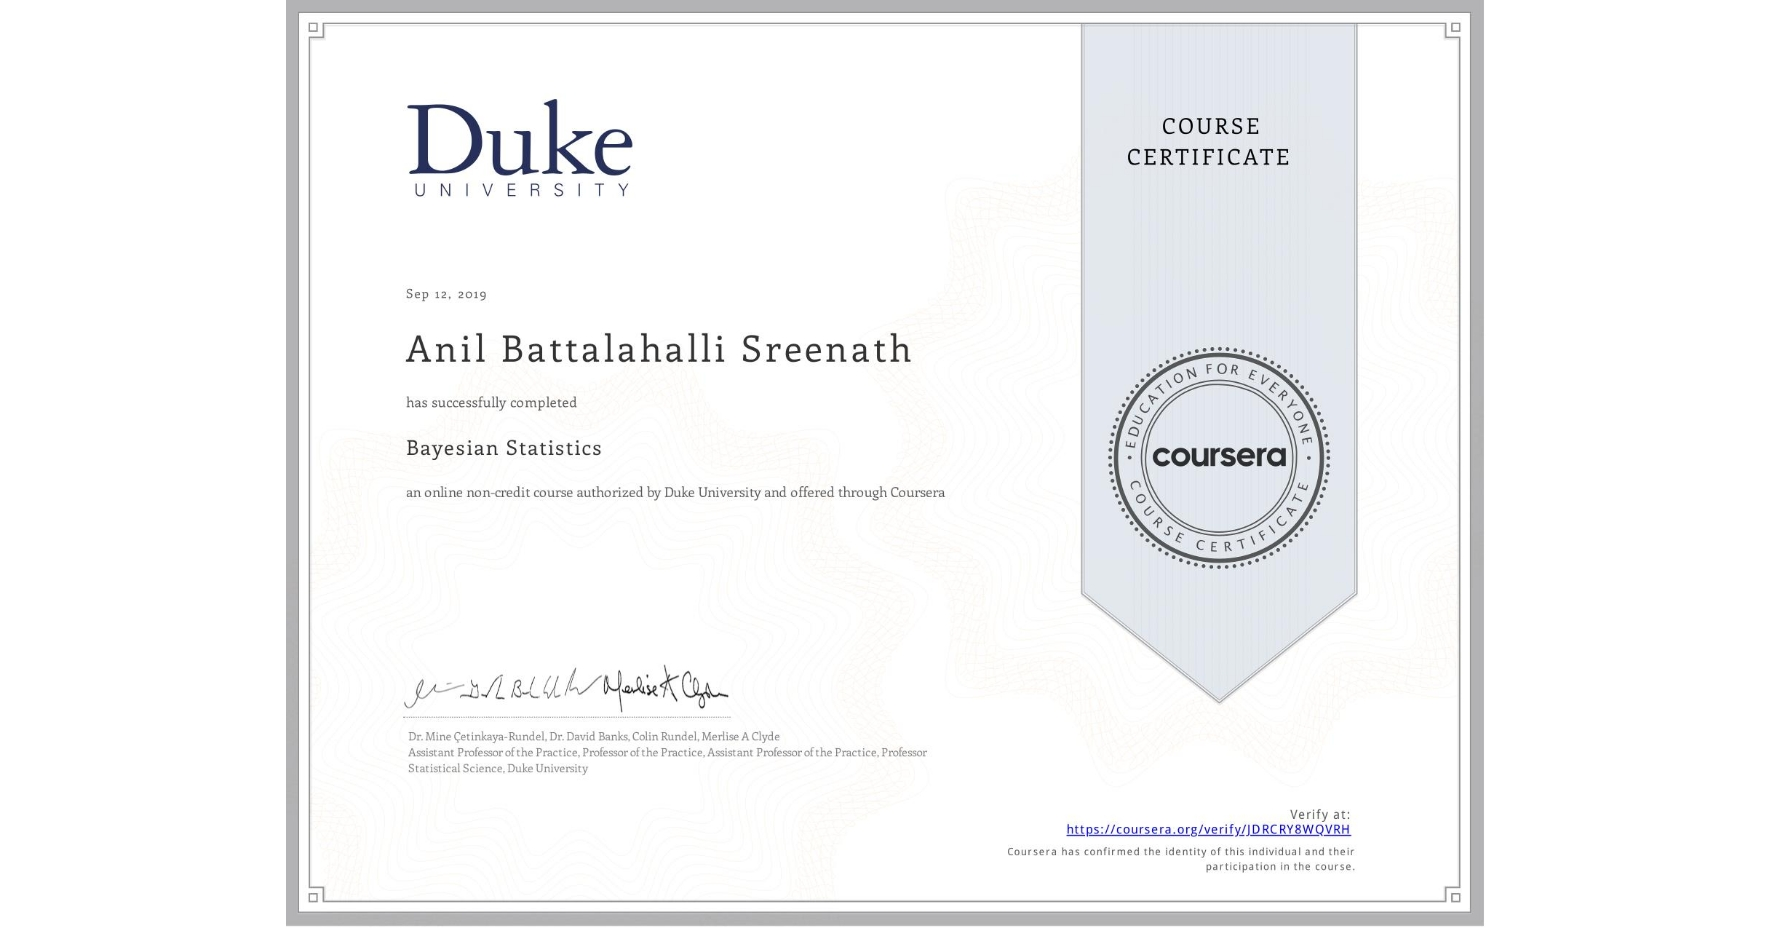 View certificate for Anil Battalahalli Sreenath, Bayesian Statistics, an online non-credit course authorized by Duke University and offered through Coursera